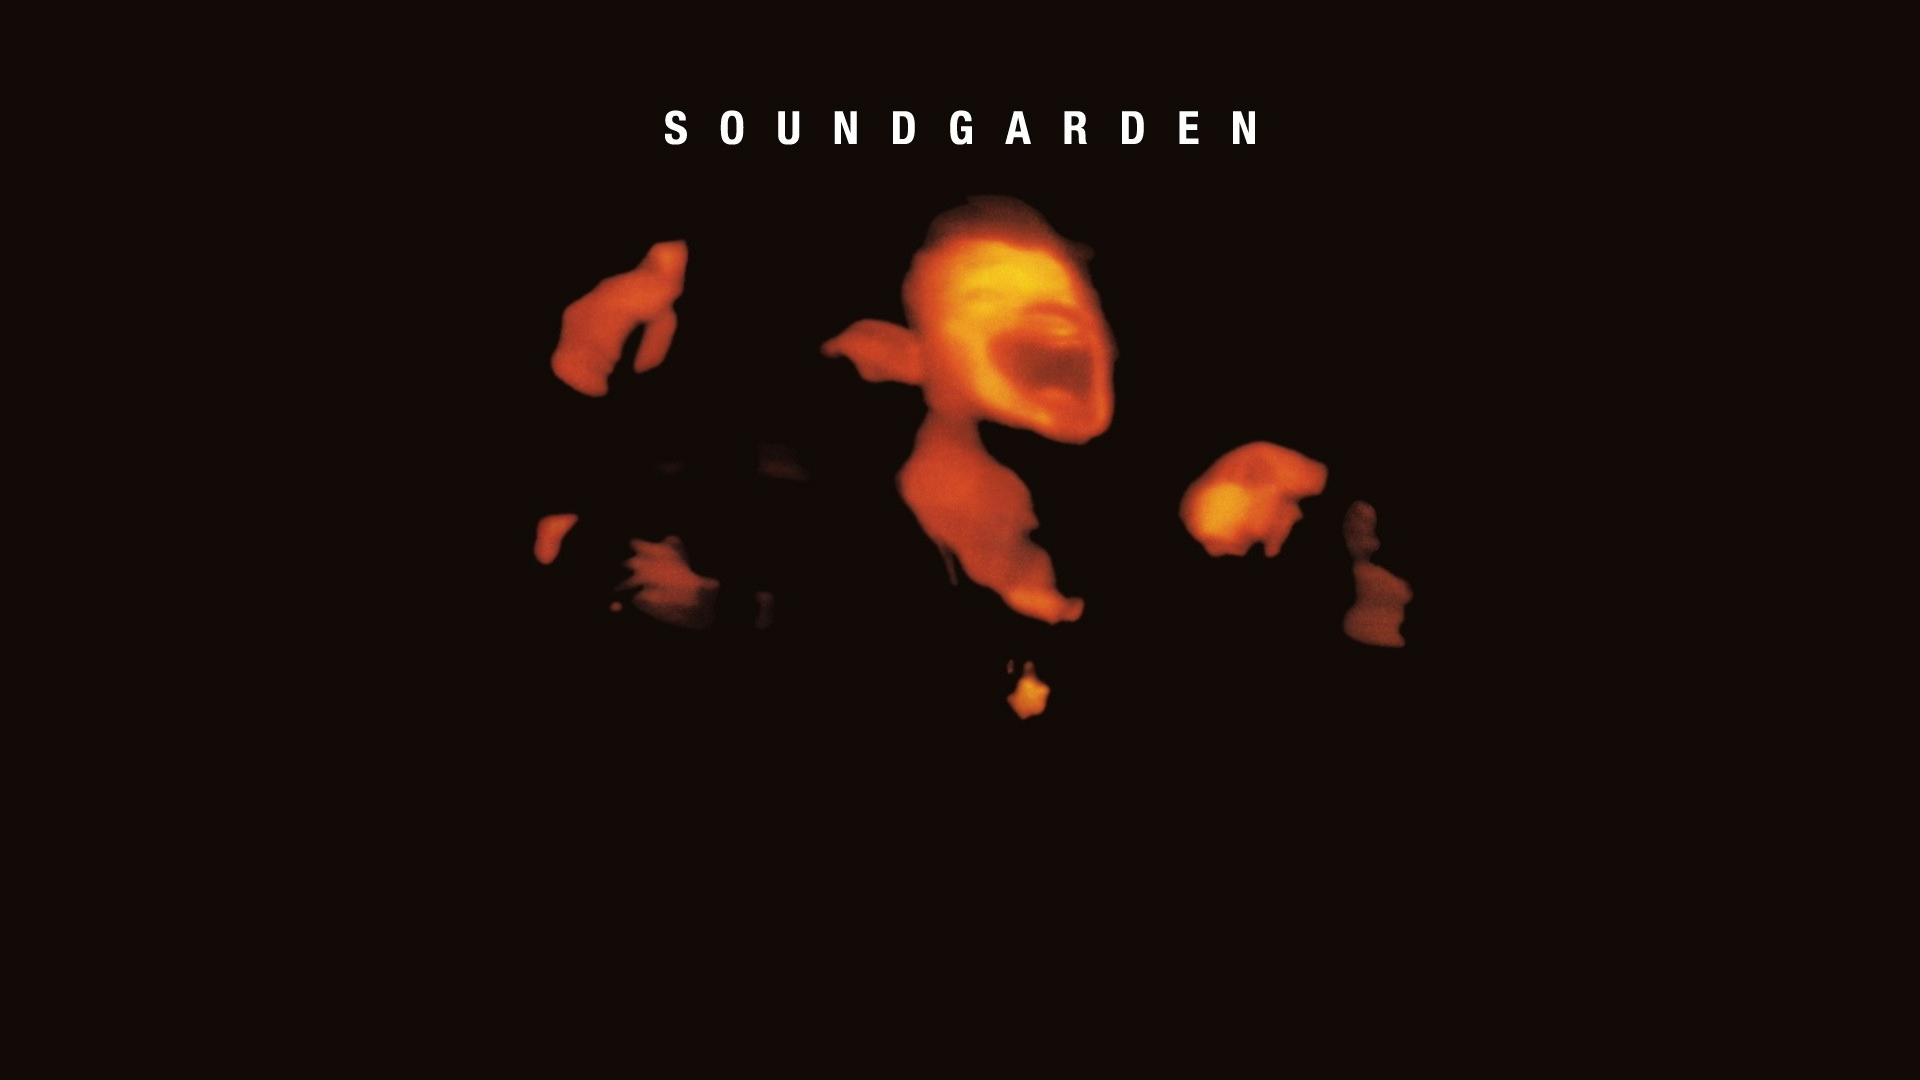 soundgarden_superunknown_wallpaper_by_orangeman80-d5rd0wo